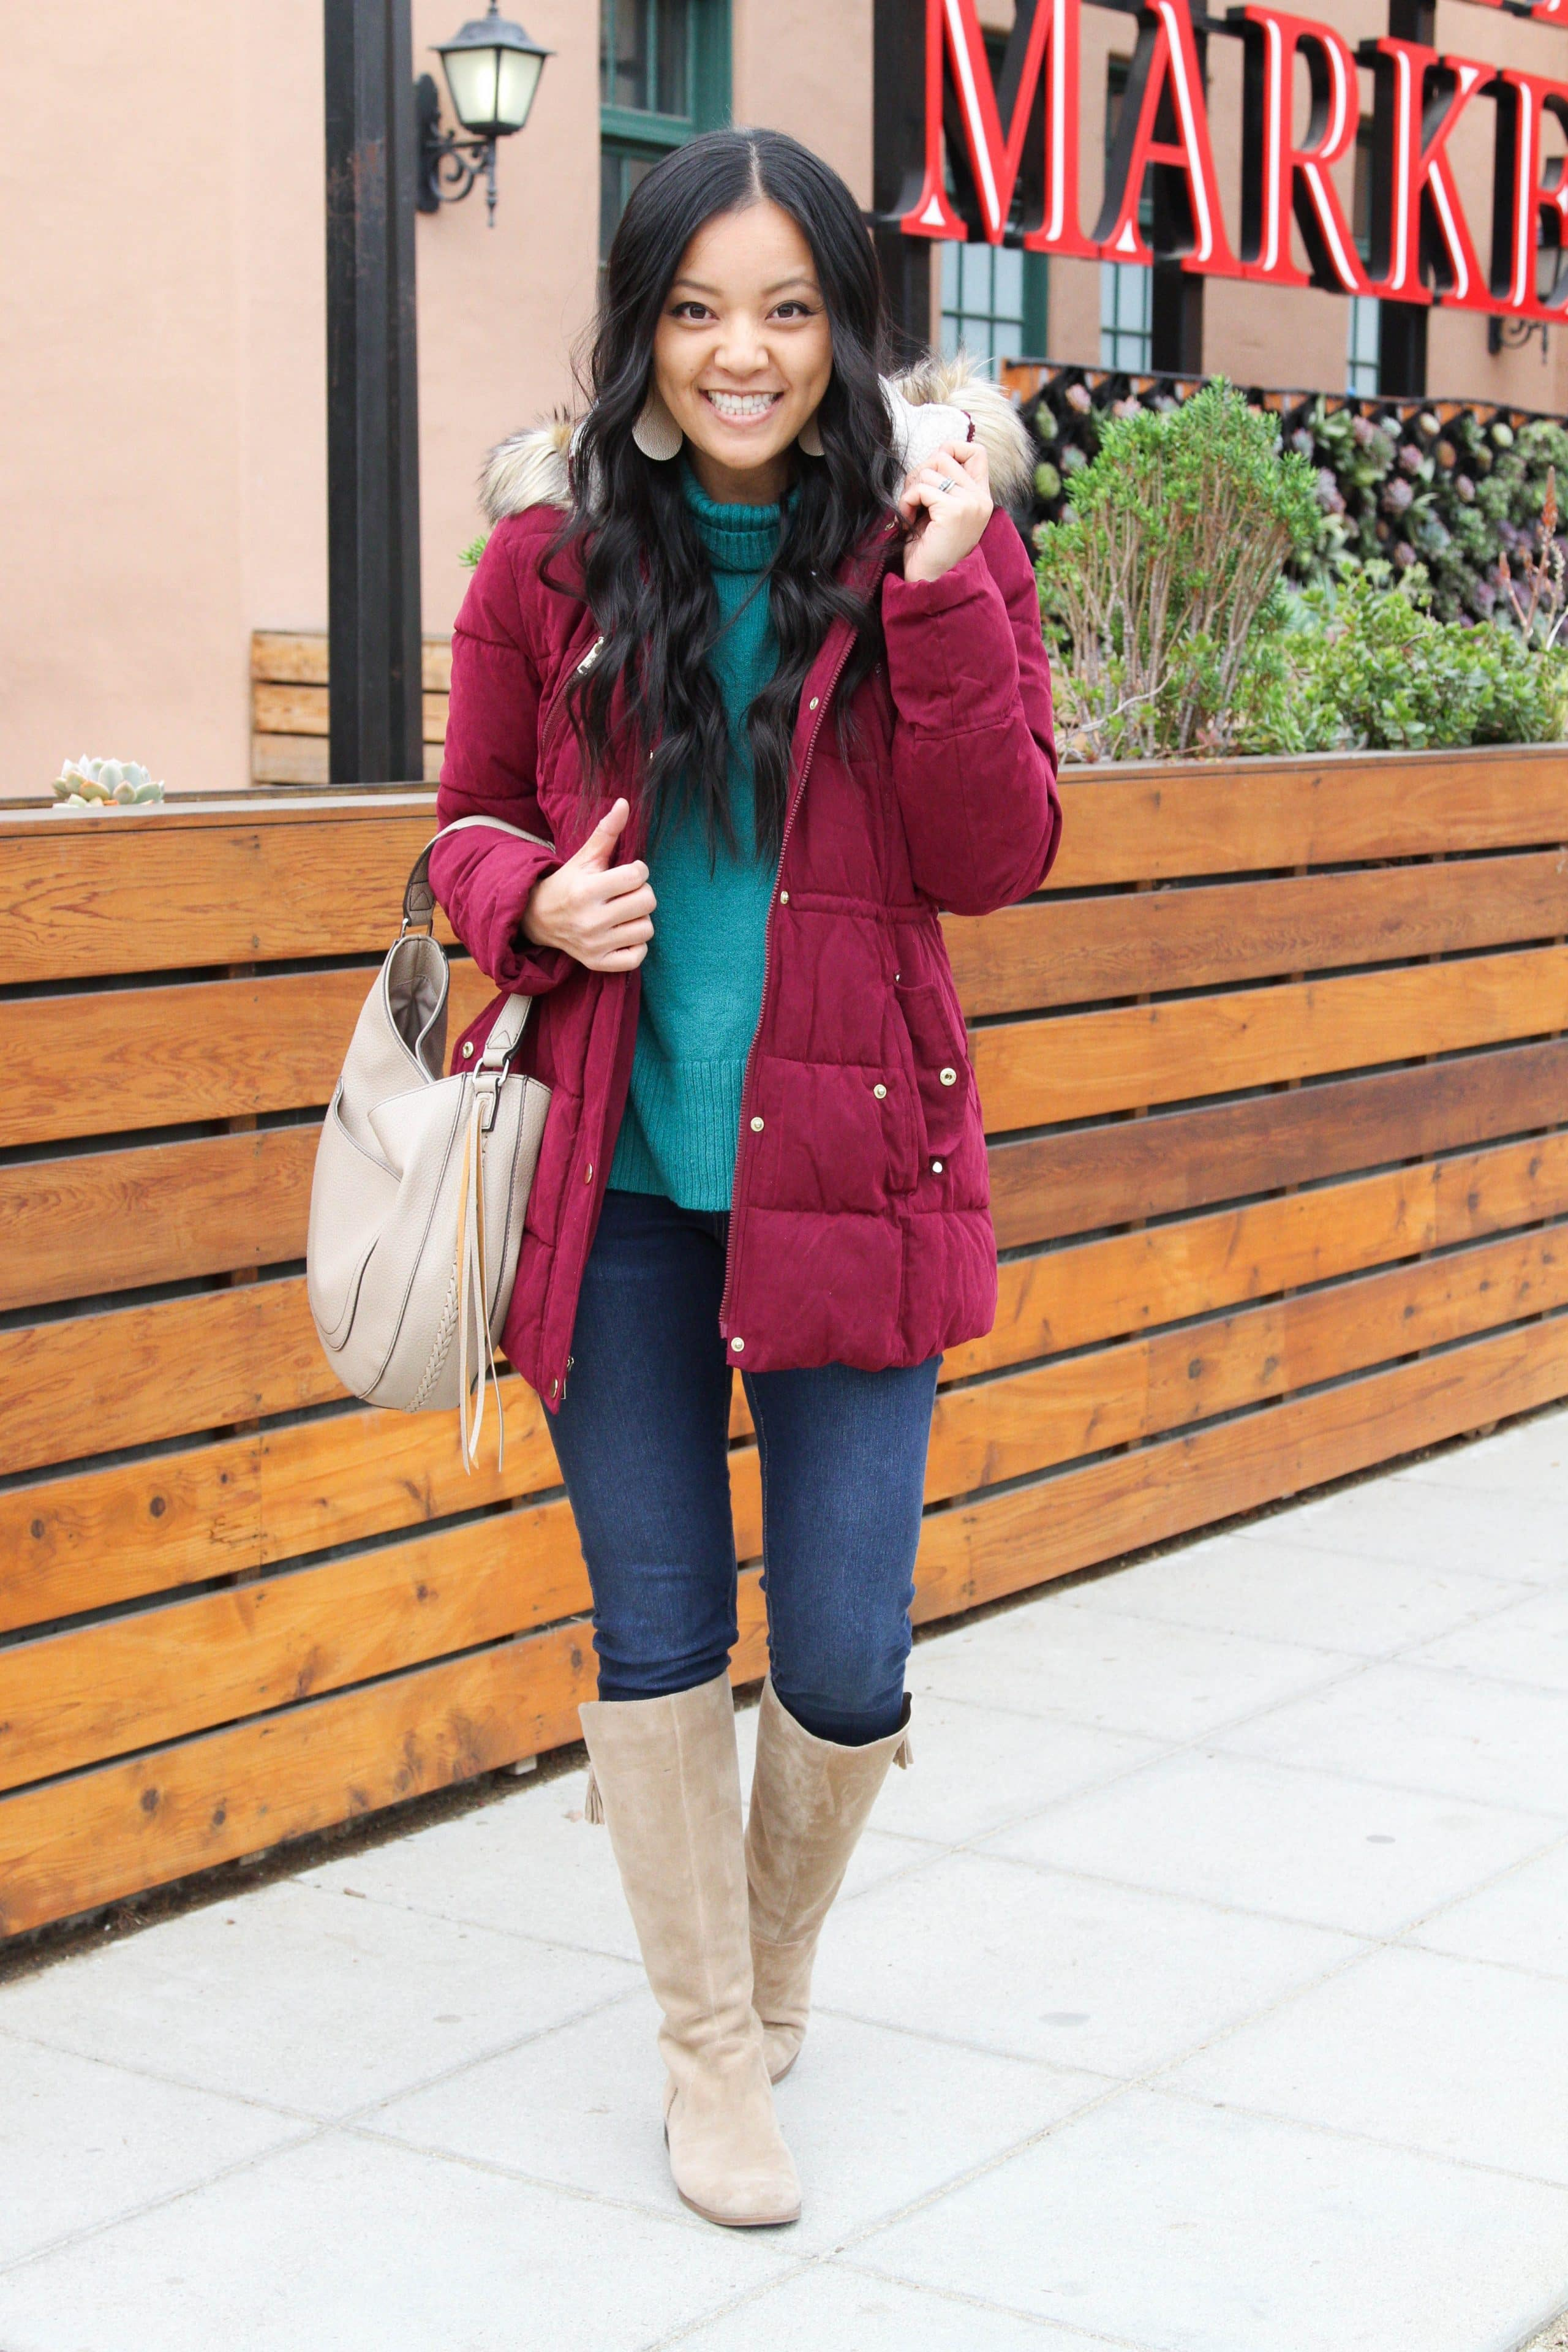 Puffer Jacket + Green Sweater + Jeans + Taupe Boots